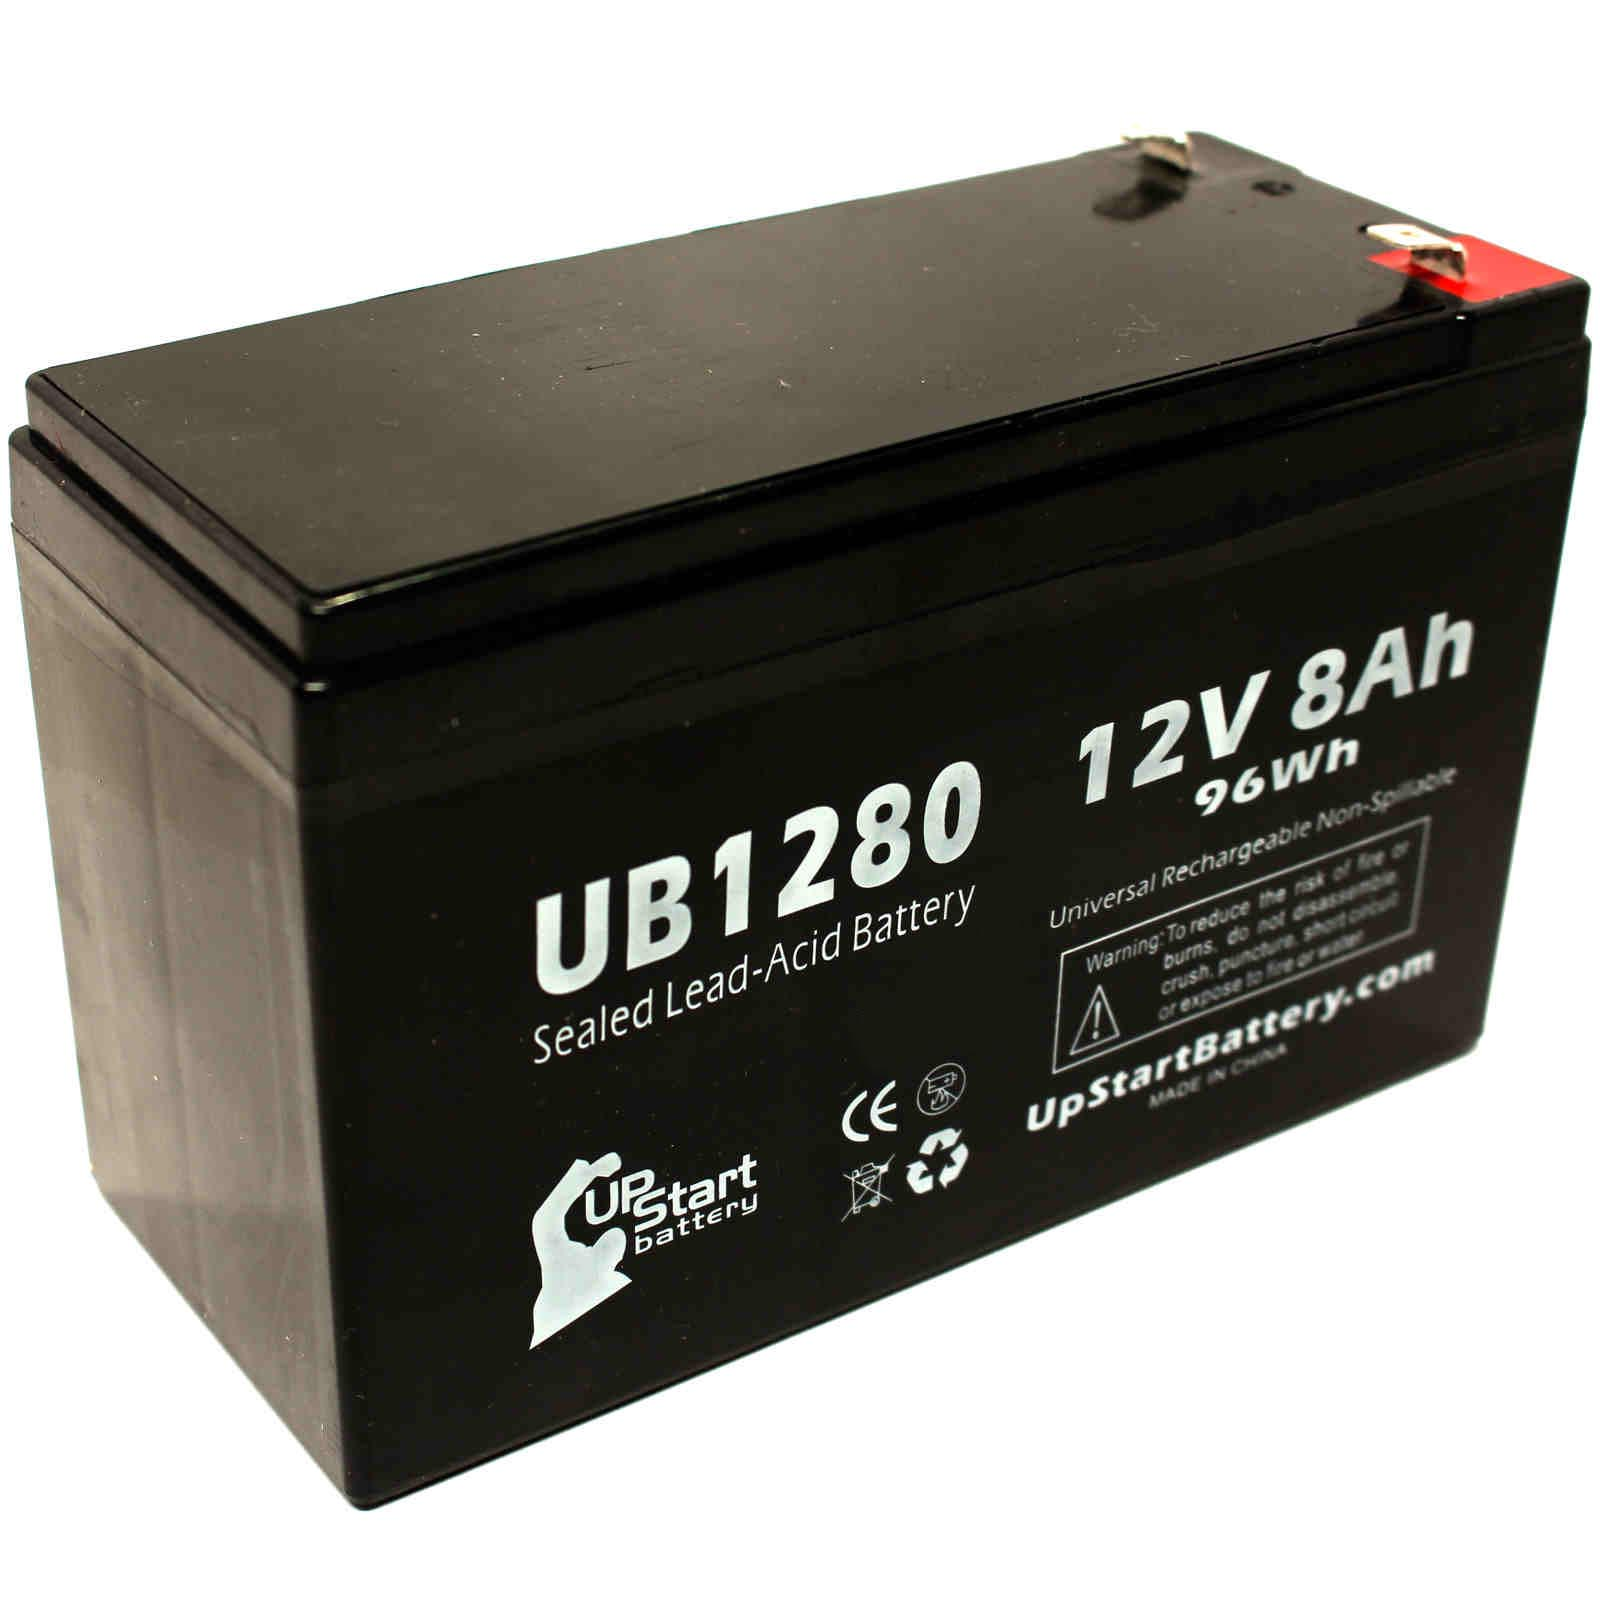 UpStart Battery Invivo Research Inc 1000 OMEGA BLOOD PRESSURE MONITOR Battery - Replacement UB1280 Universal SLA Battery (12V, 8Ah, 8000mAh) at Sears.com